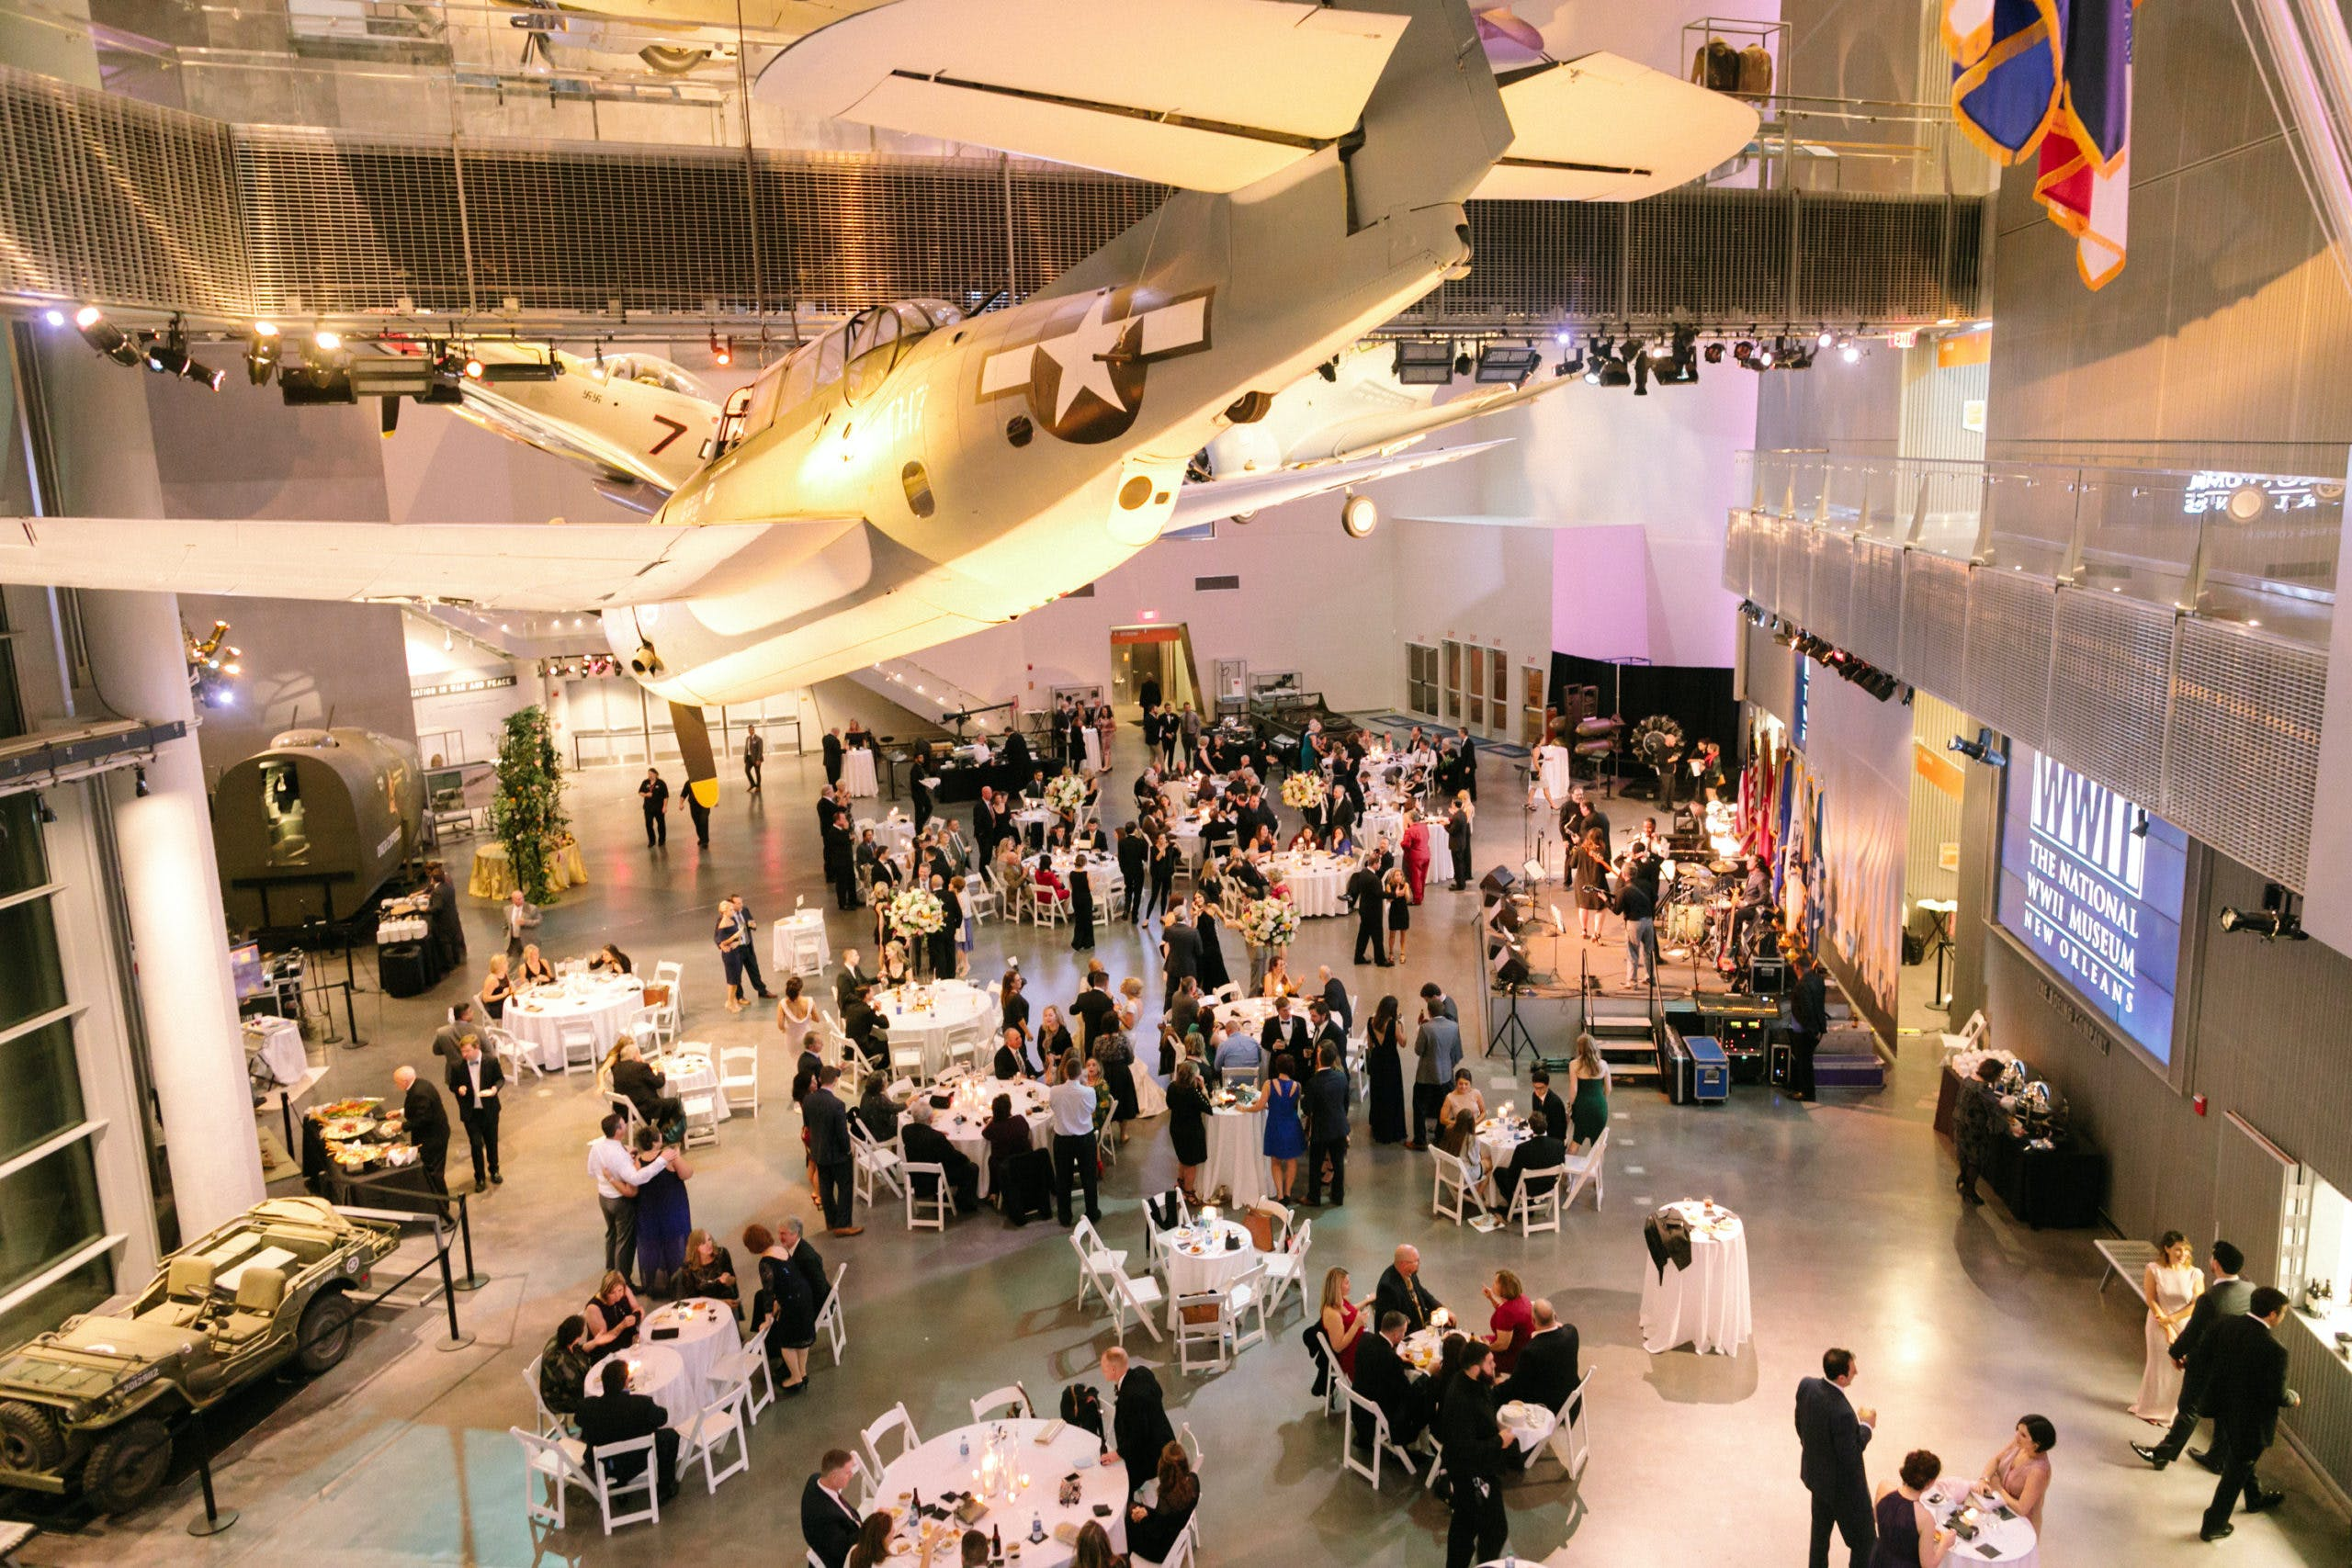 Higher view of reception venue filled with people l PartySlate